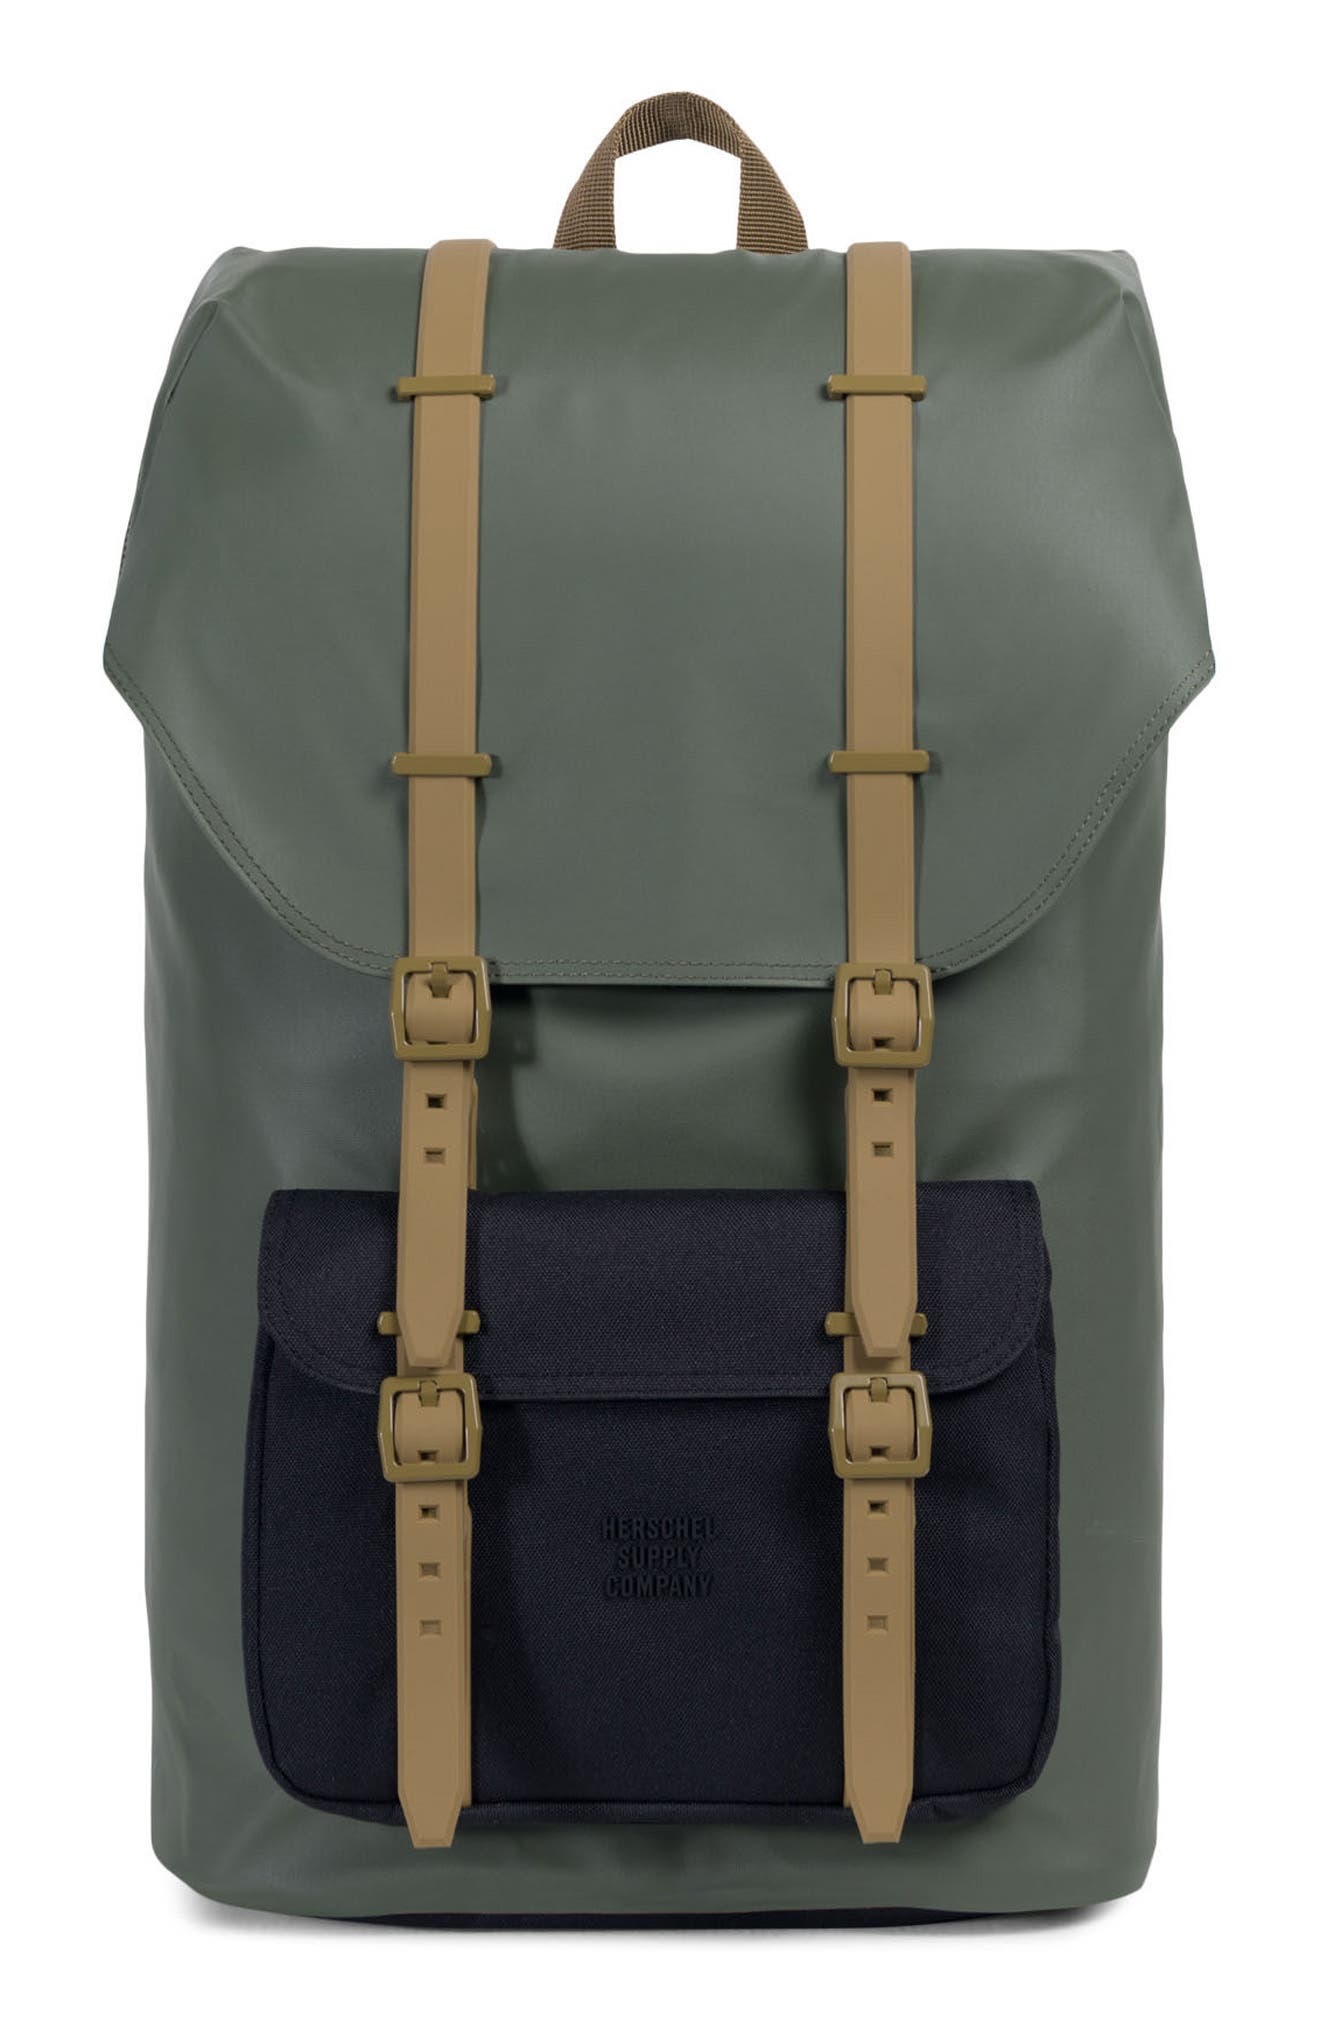 Little America Studio Collection Backpack,                         Main,                         color, Beetle/ Black/ Gothic Olive